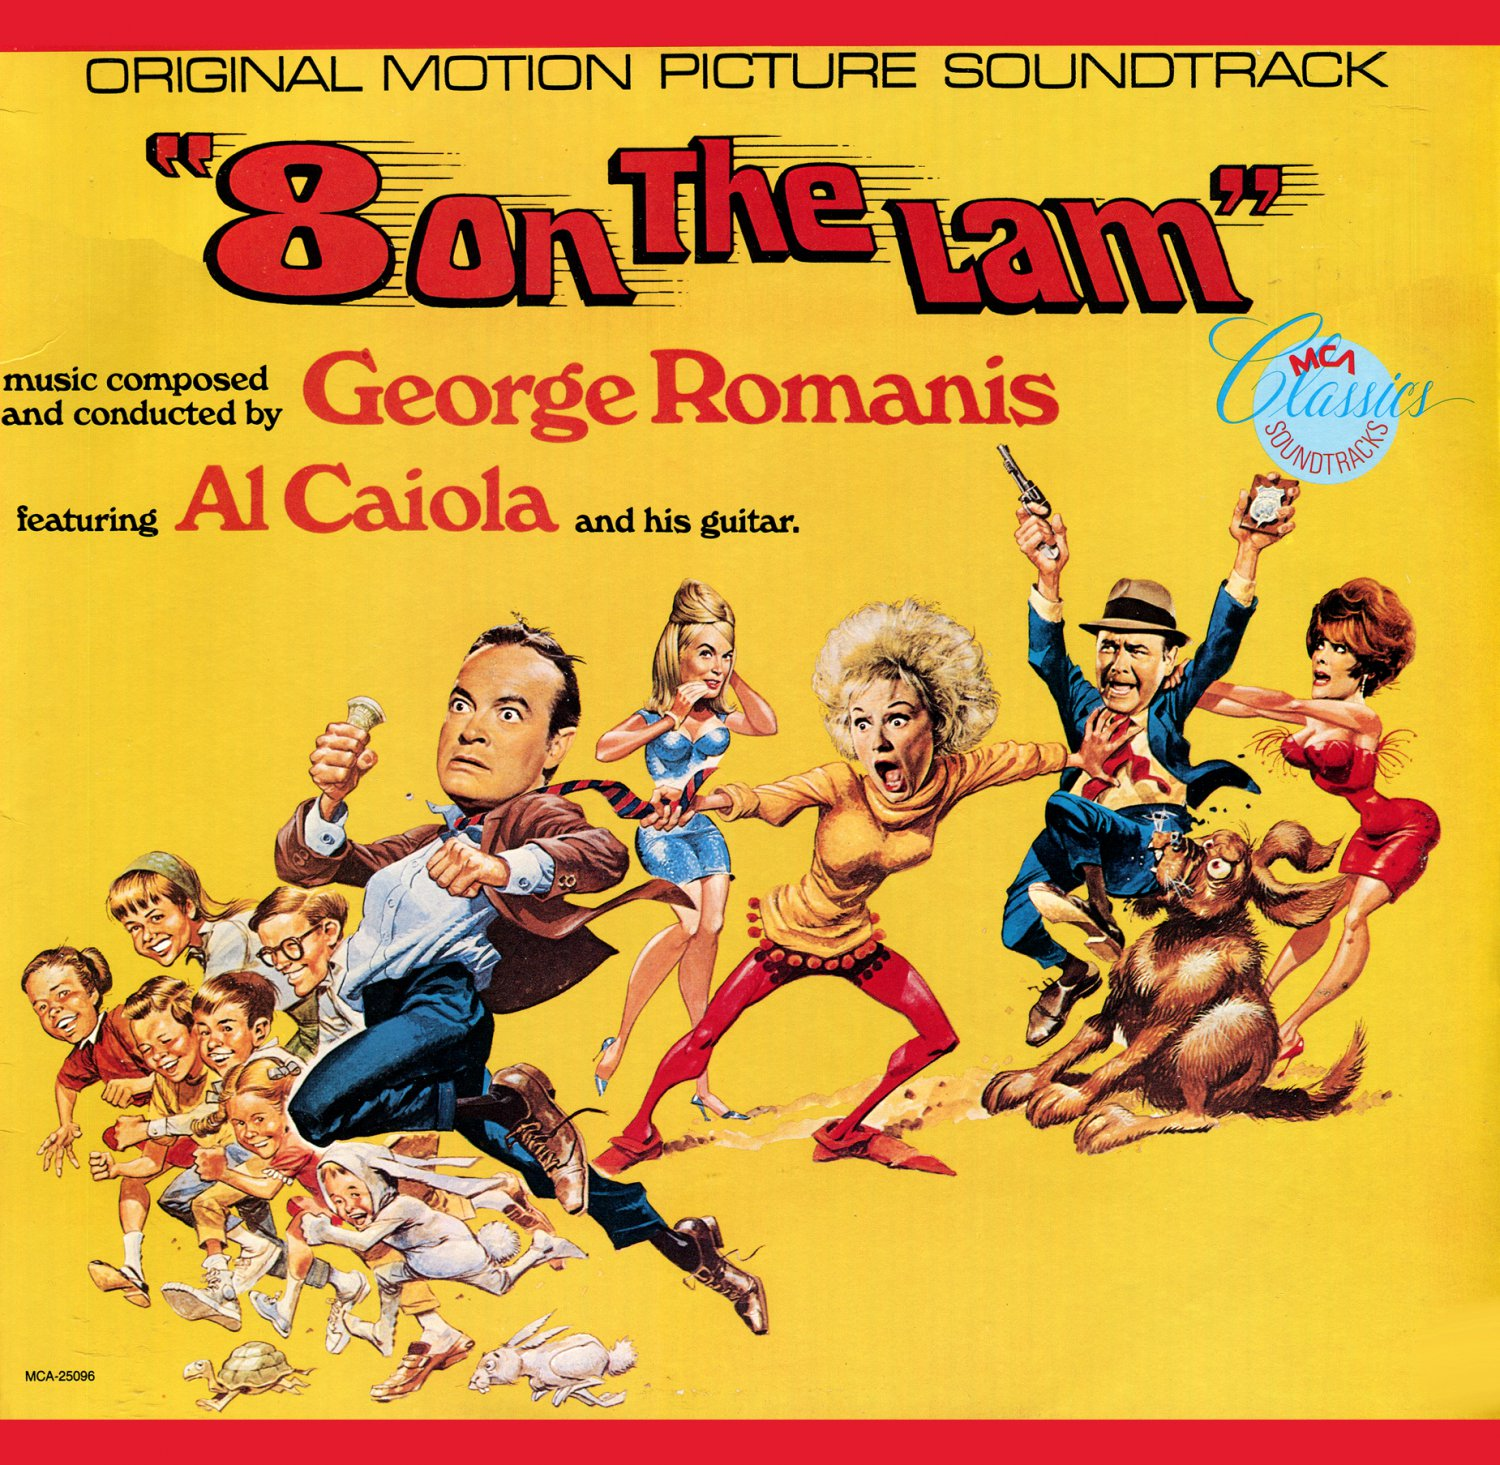 Eight On The Lam - Original Soundtrack, George Romanis OST LP/CD 8